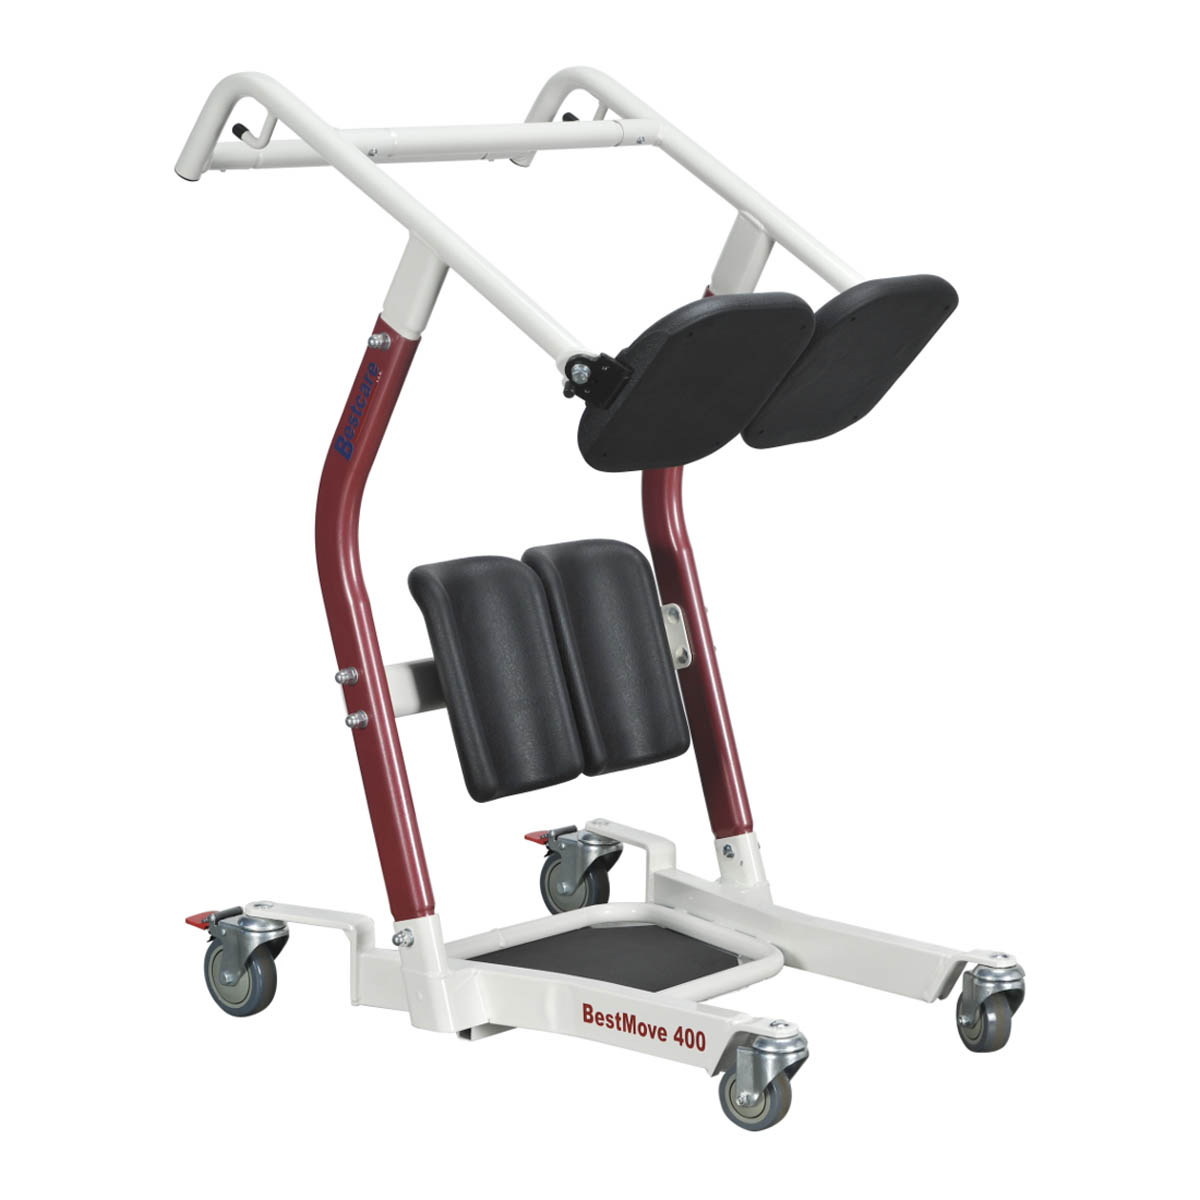 BestMove Spryte 400 Standing Transfer Aid | Bestcare Lifts (STA400)